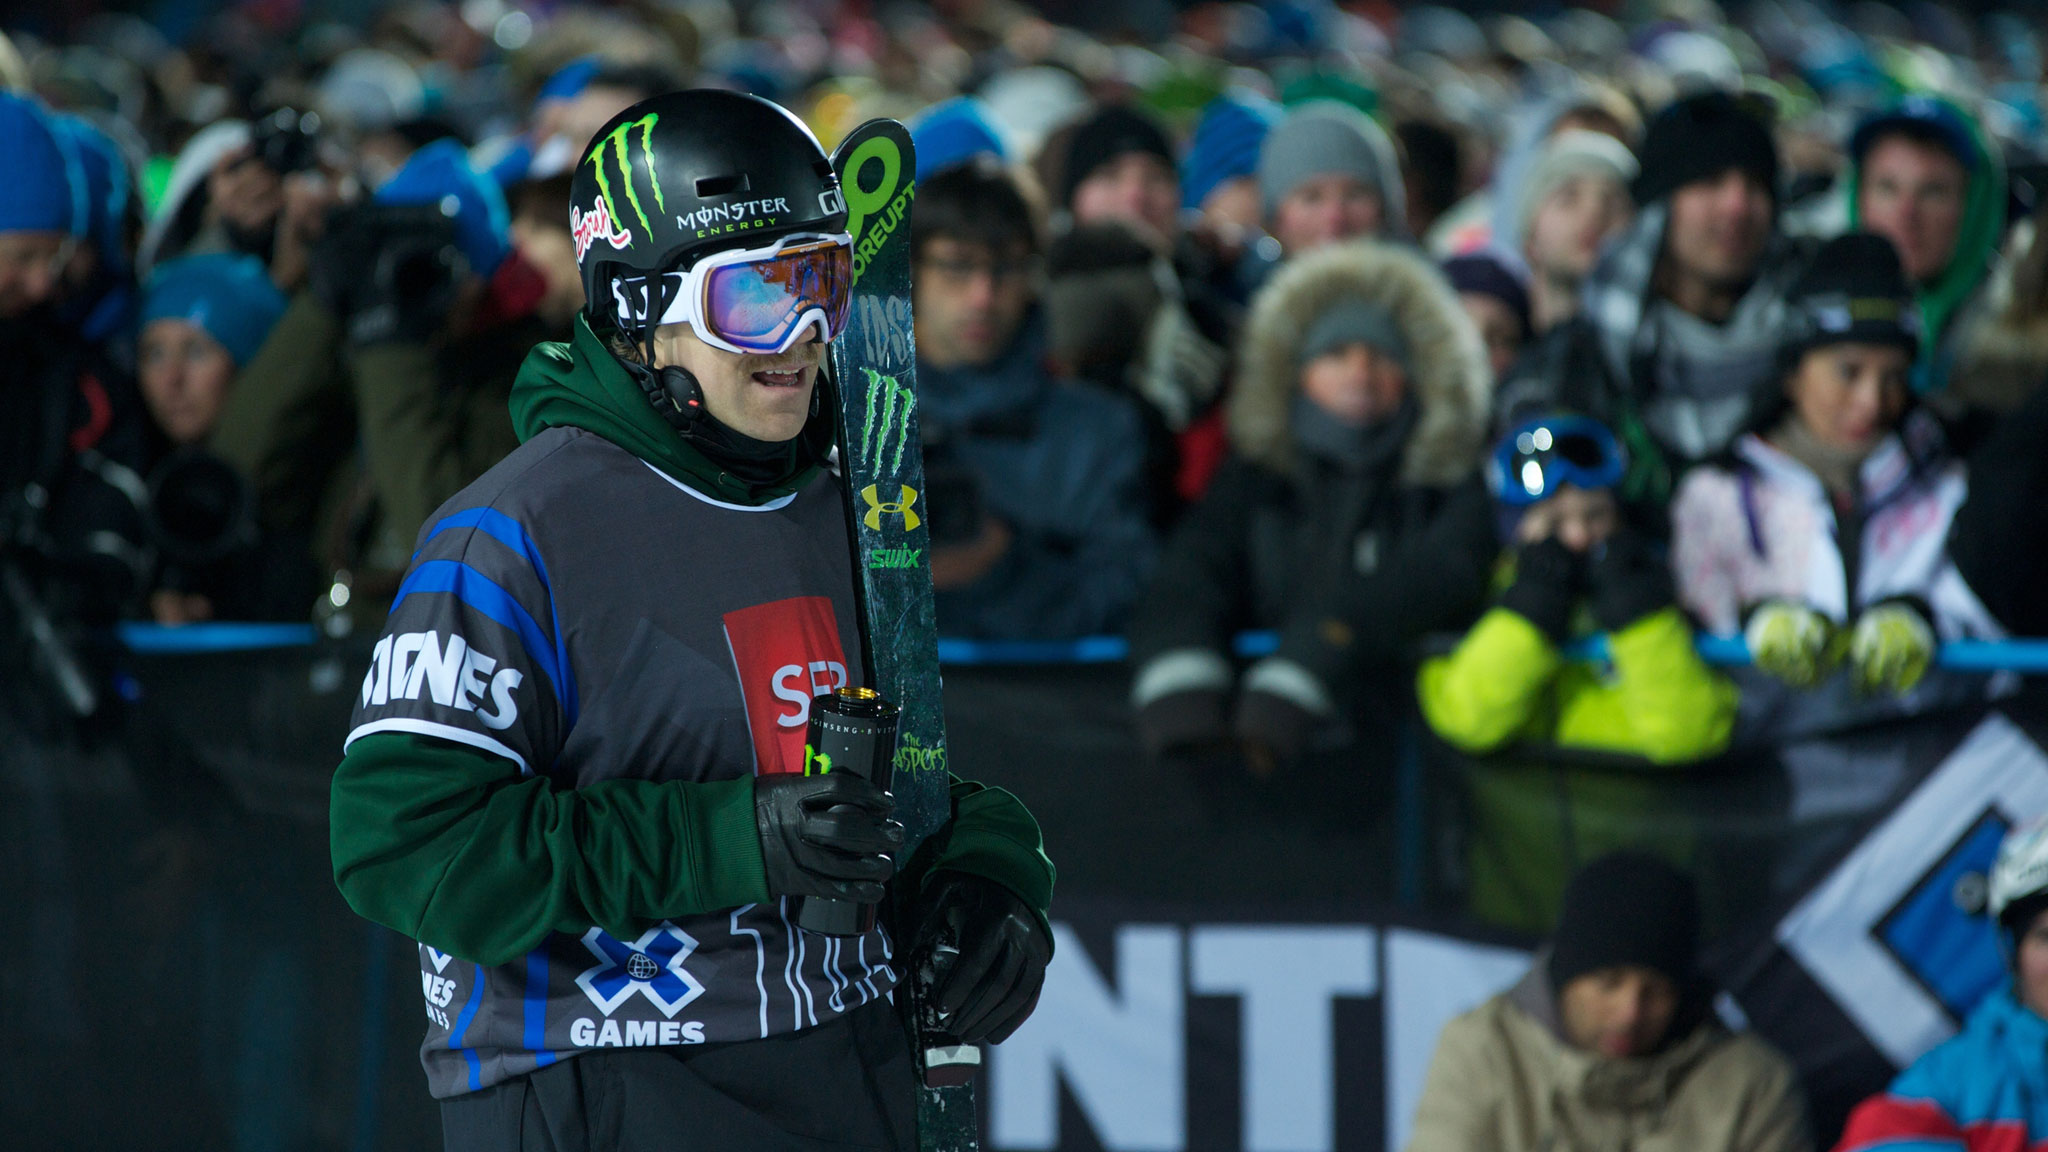 Justin Dorey won't be competing this week at X Games Aspen due to a shoulder injury.